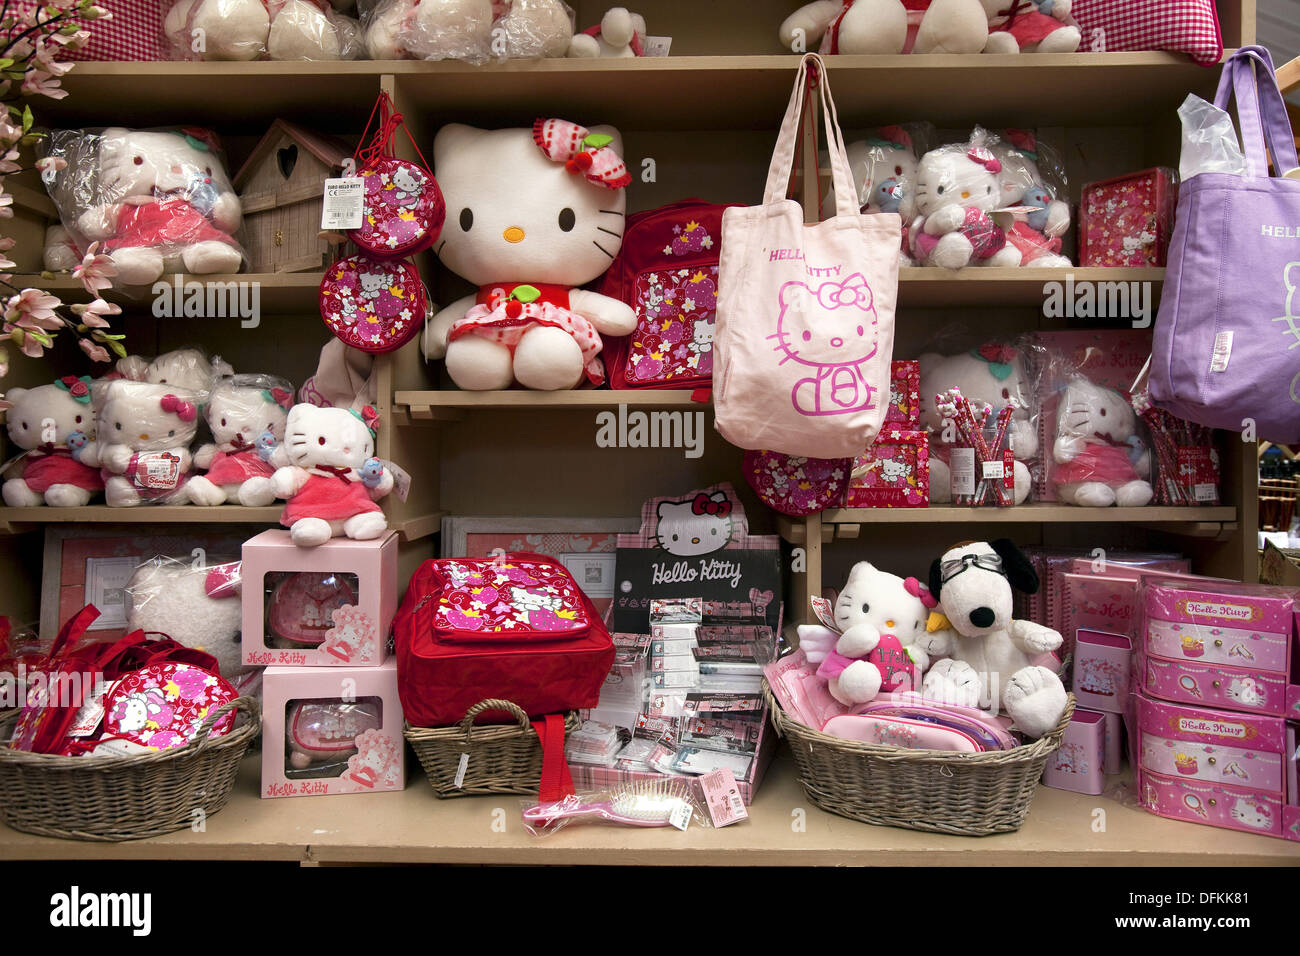 Trade Mark Kitty Merchandising Decorative Items For Sale On Interior